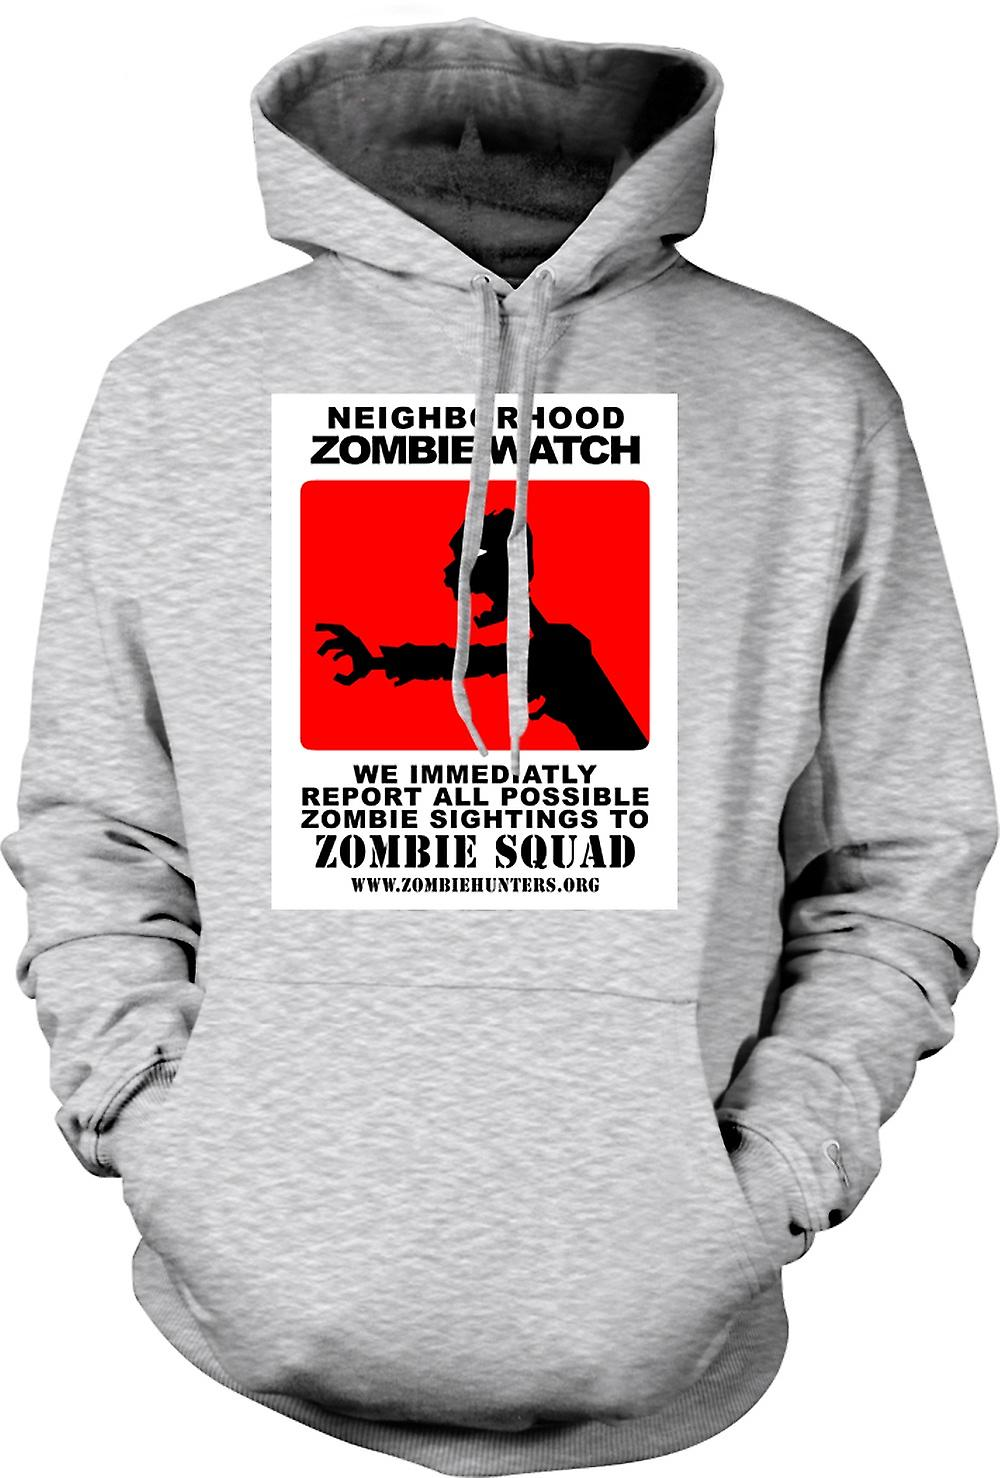 Mens Hoodie - Zombie Neighborhood Watch - Funny